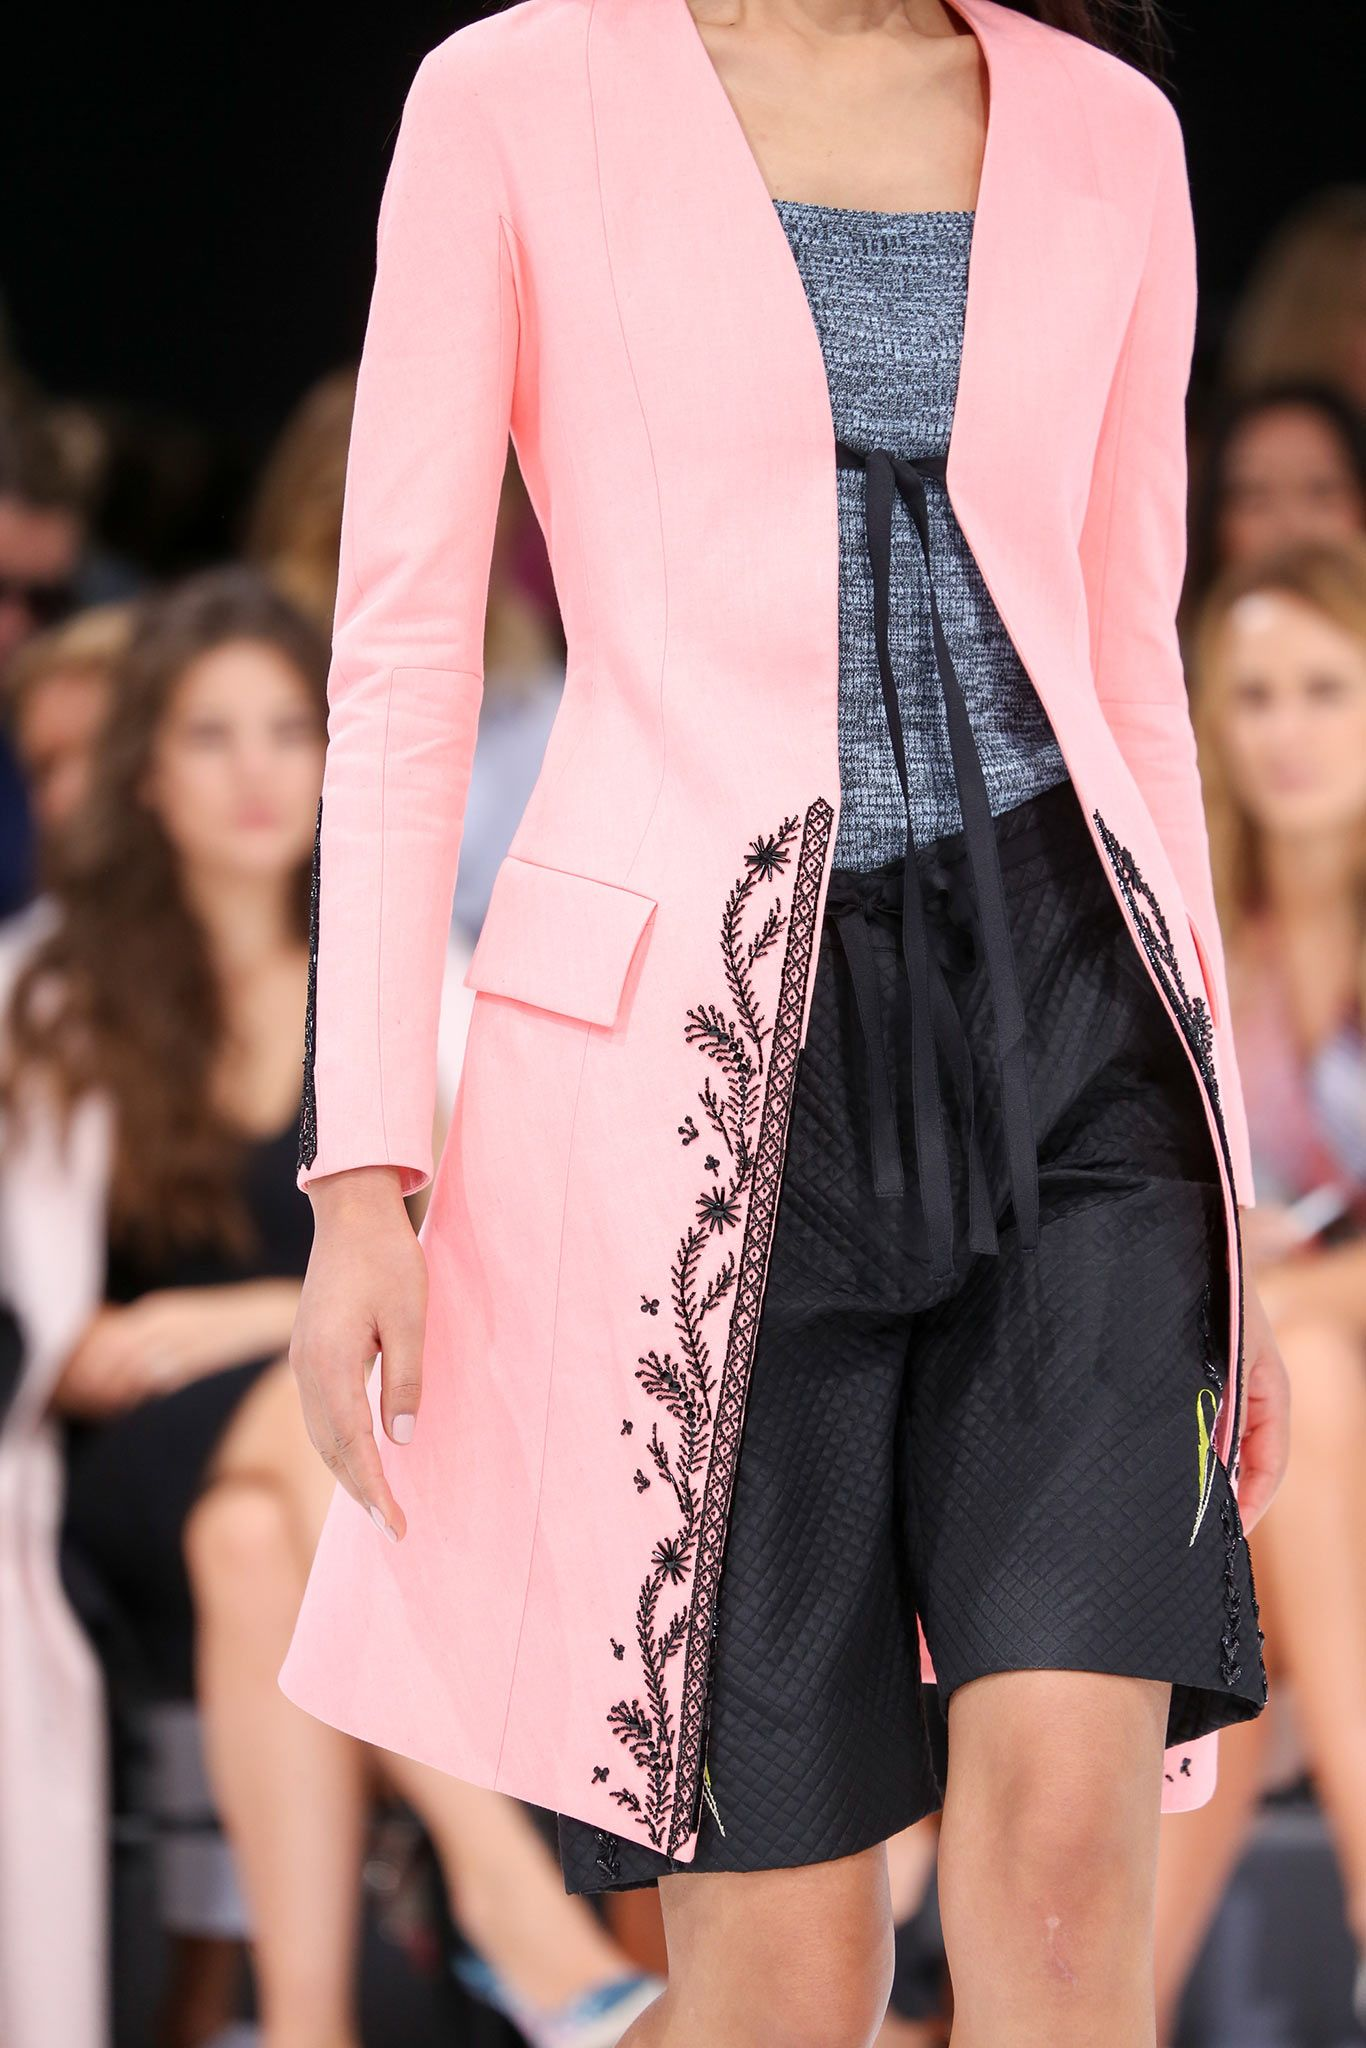 Le Meilleur Christian Dior Spring 2015 Ready To Wear Collection Ce Mois Ci